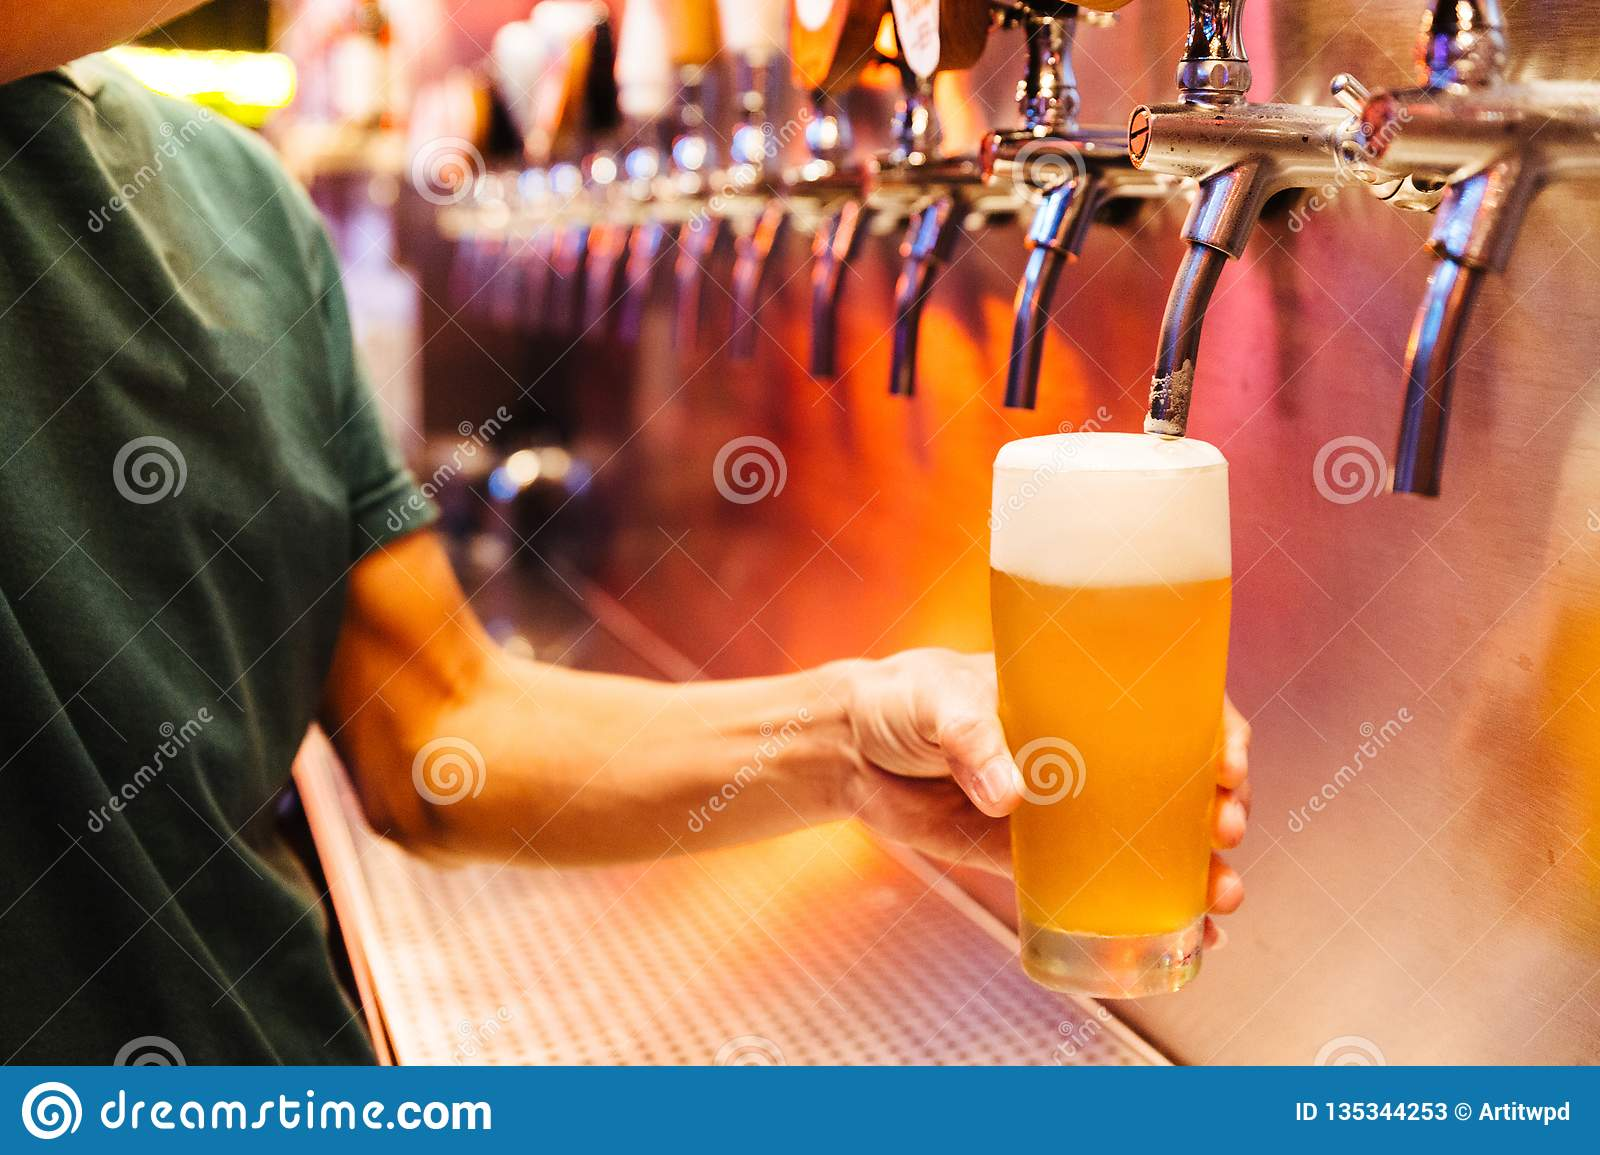 Man pouring craft beer from beer taps in frozen glass with froth. Selective focus. Alcohol concept. Vintage style. Beer craft